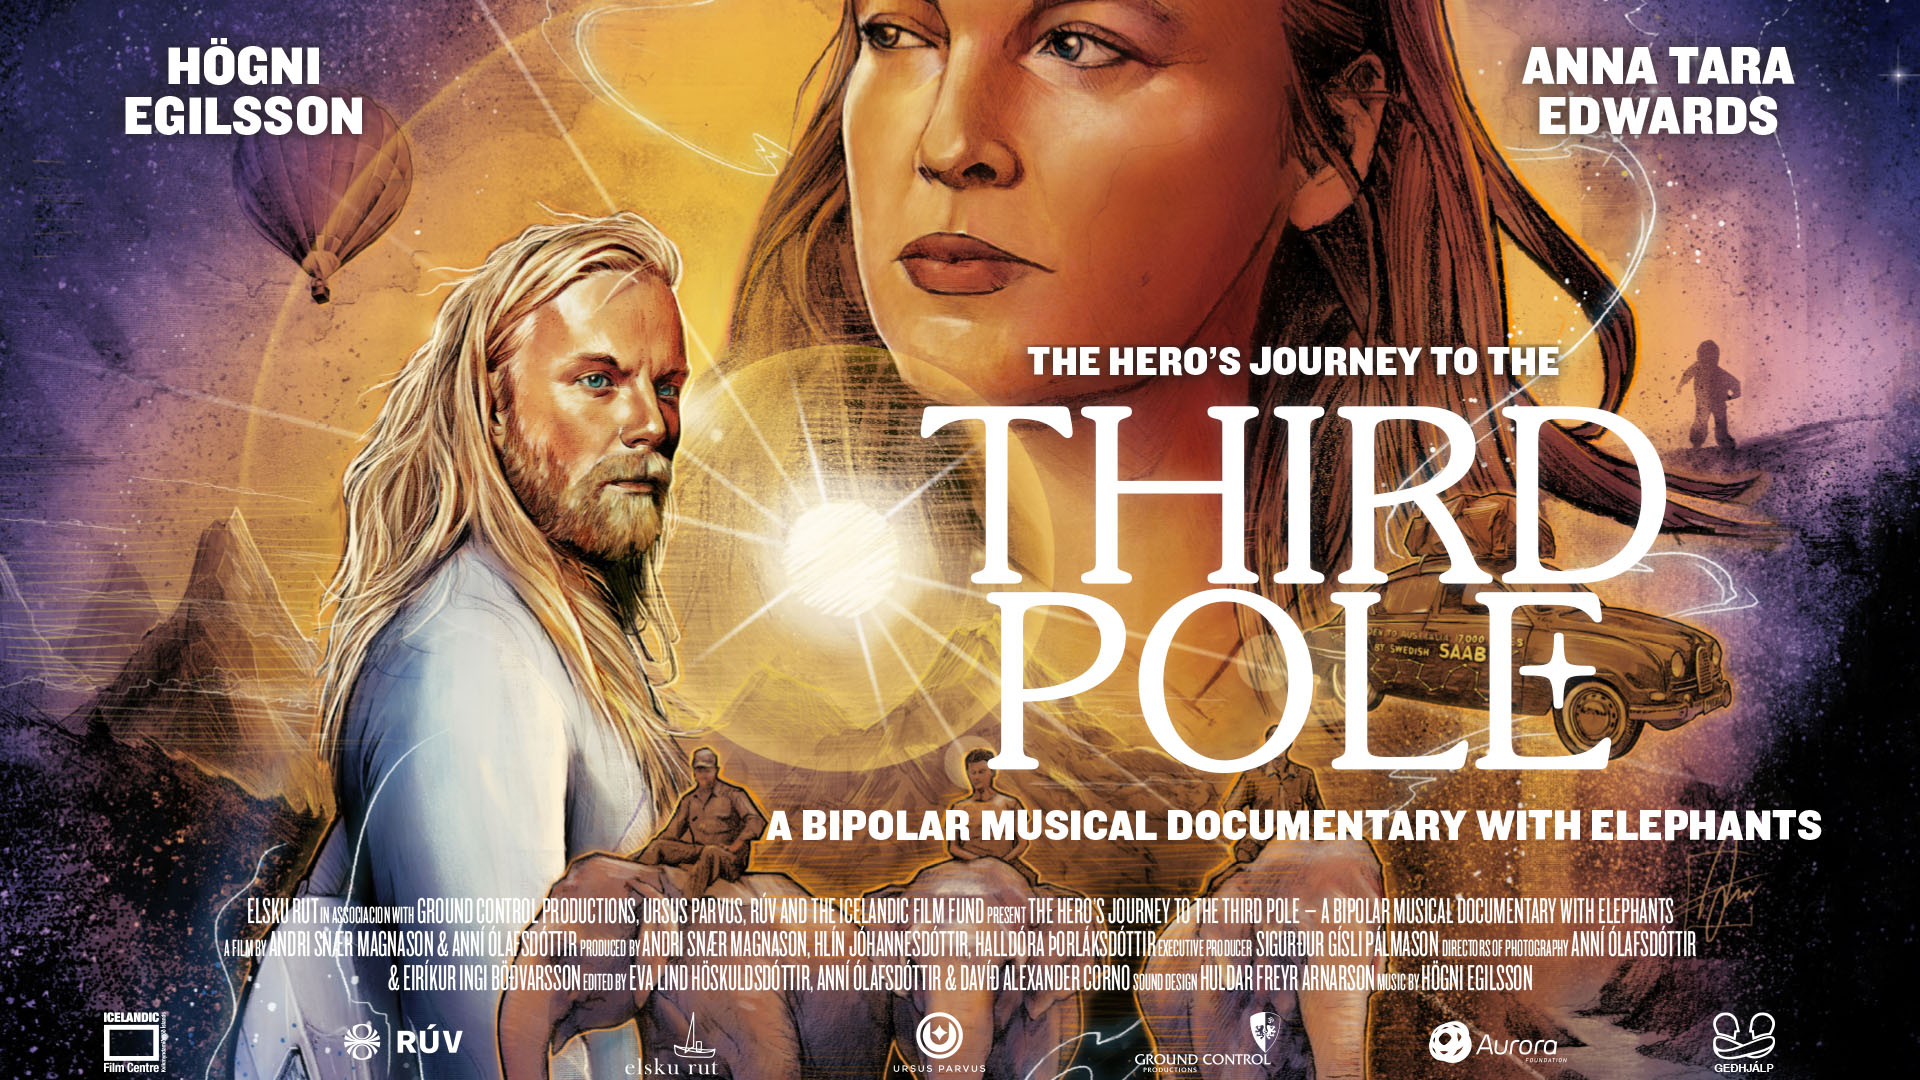 The Hero's Journey to the Third Pole